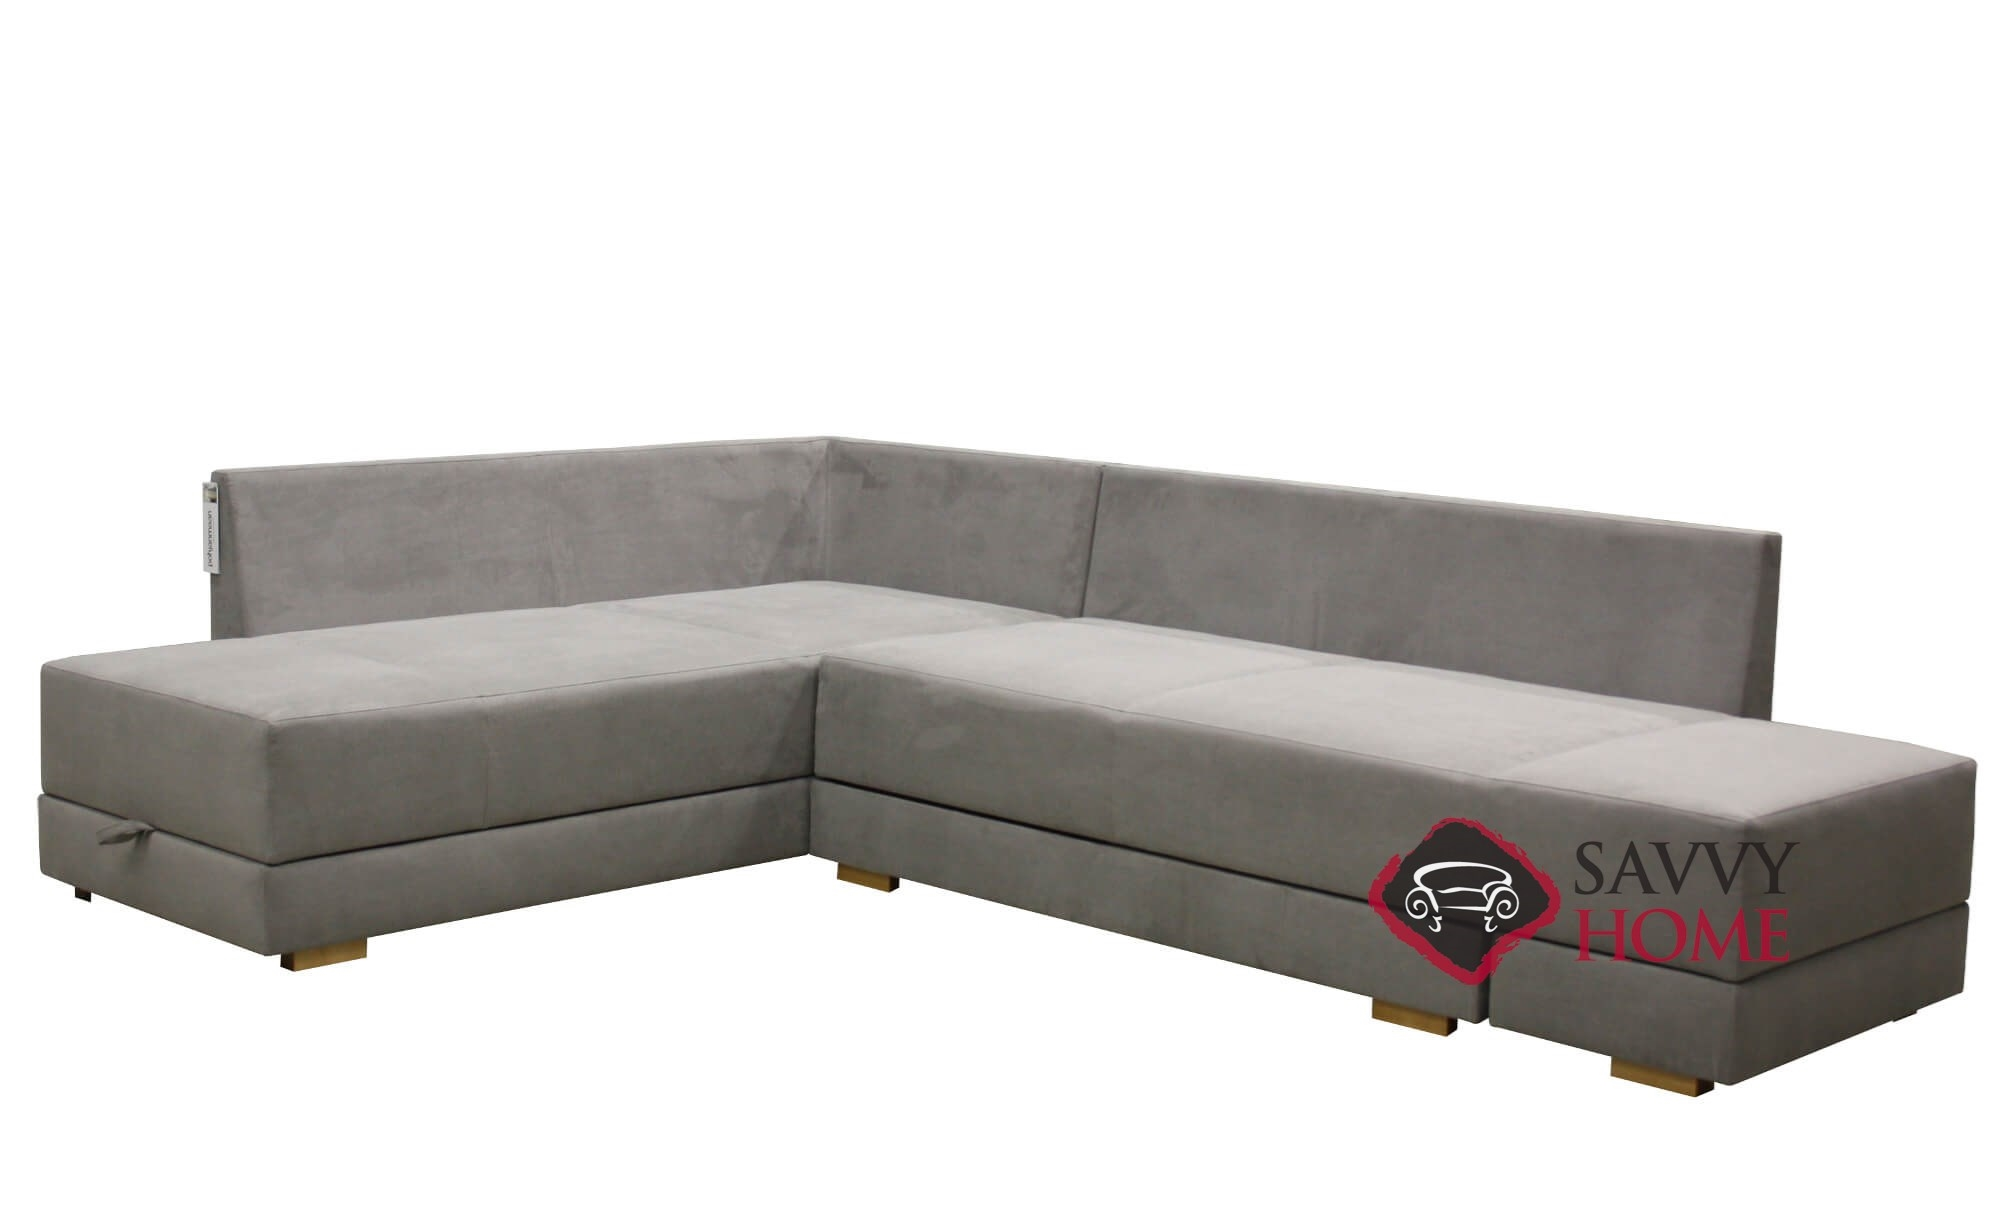 Brooklyn Sectional Queen Sofa Bed with Storage Option by Luonto